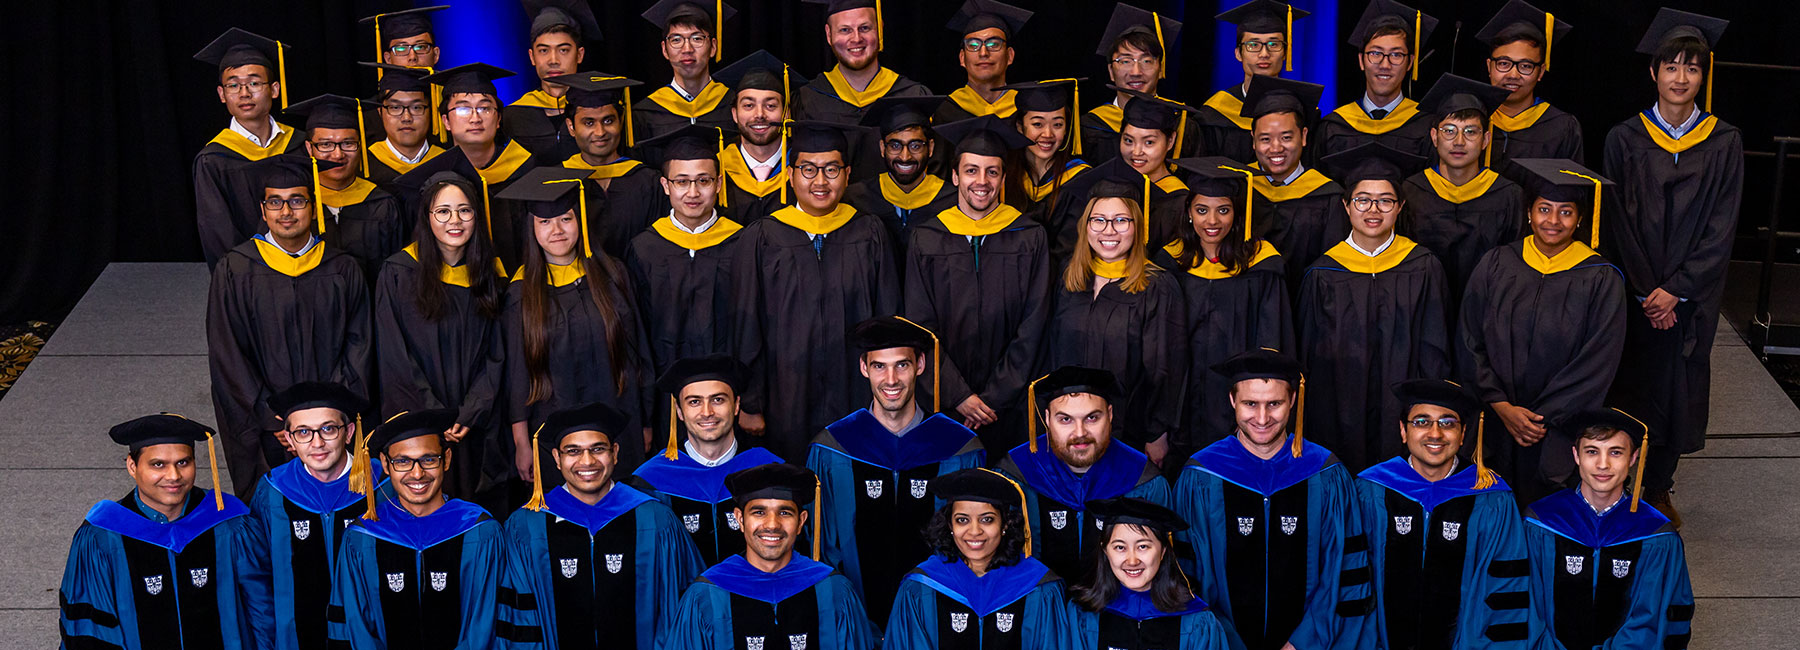 Graduation 2019 Grad Students